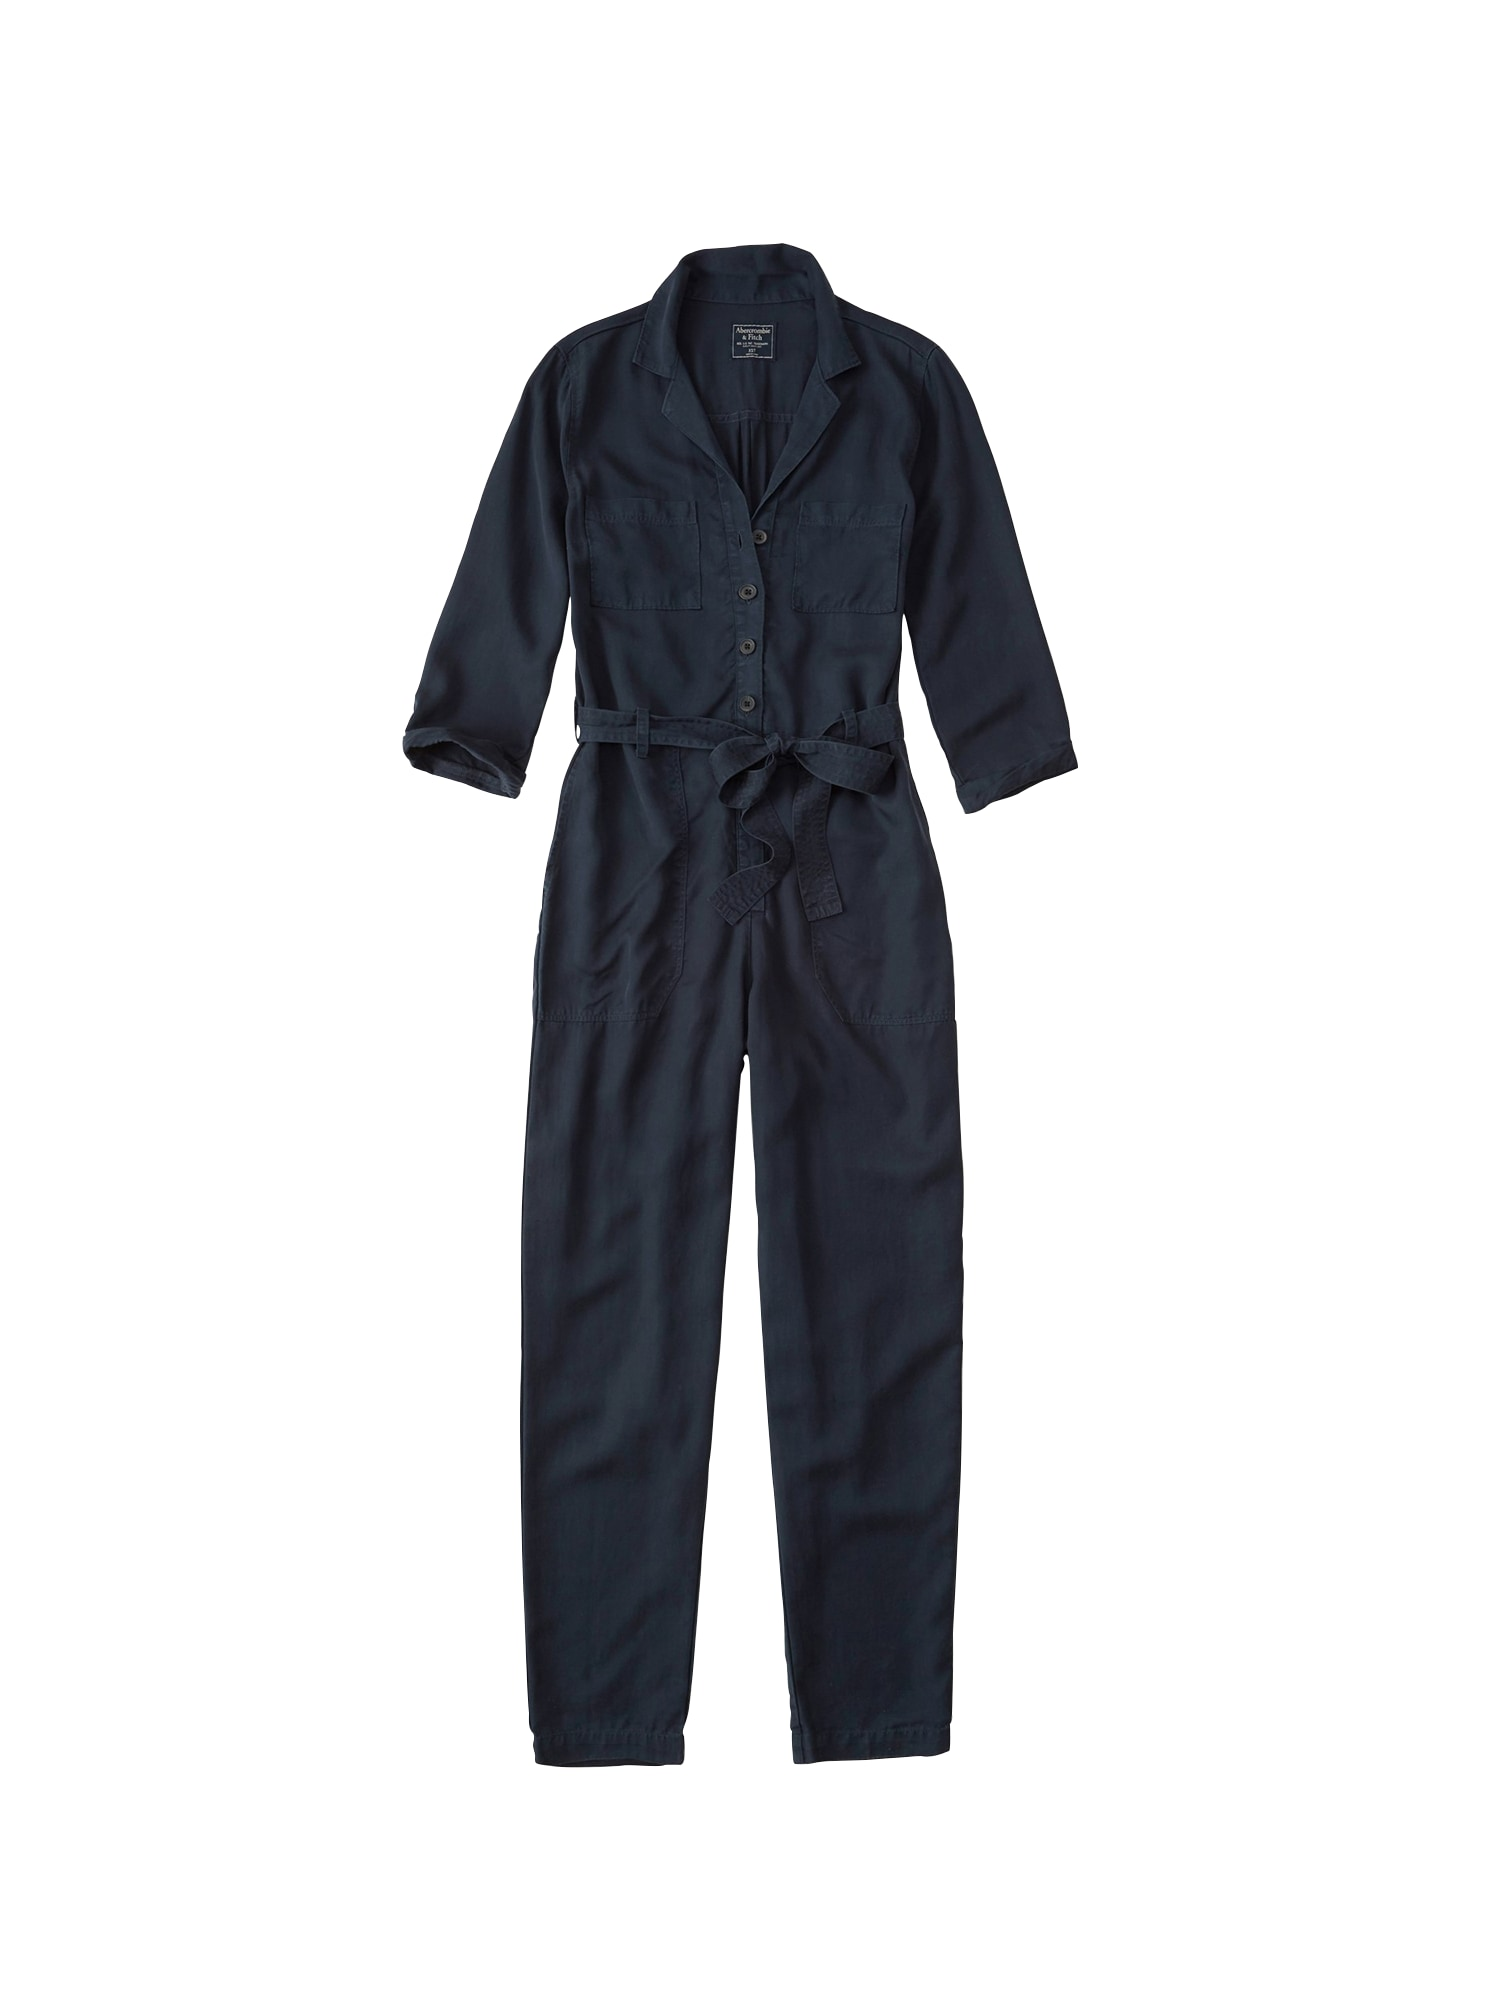 Overal UTILITY BOILERSUIT navy Abercrombie & Fitch